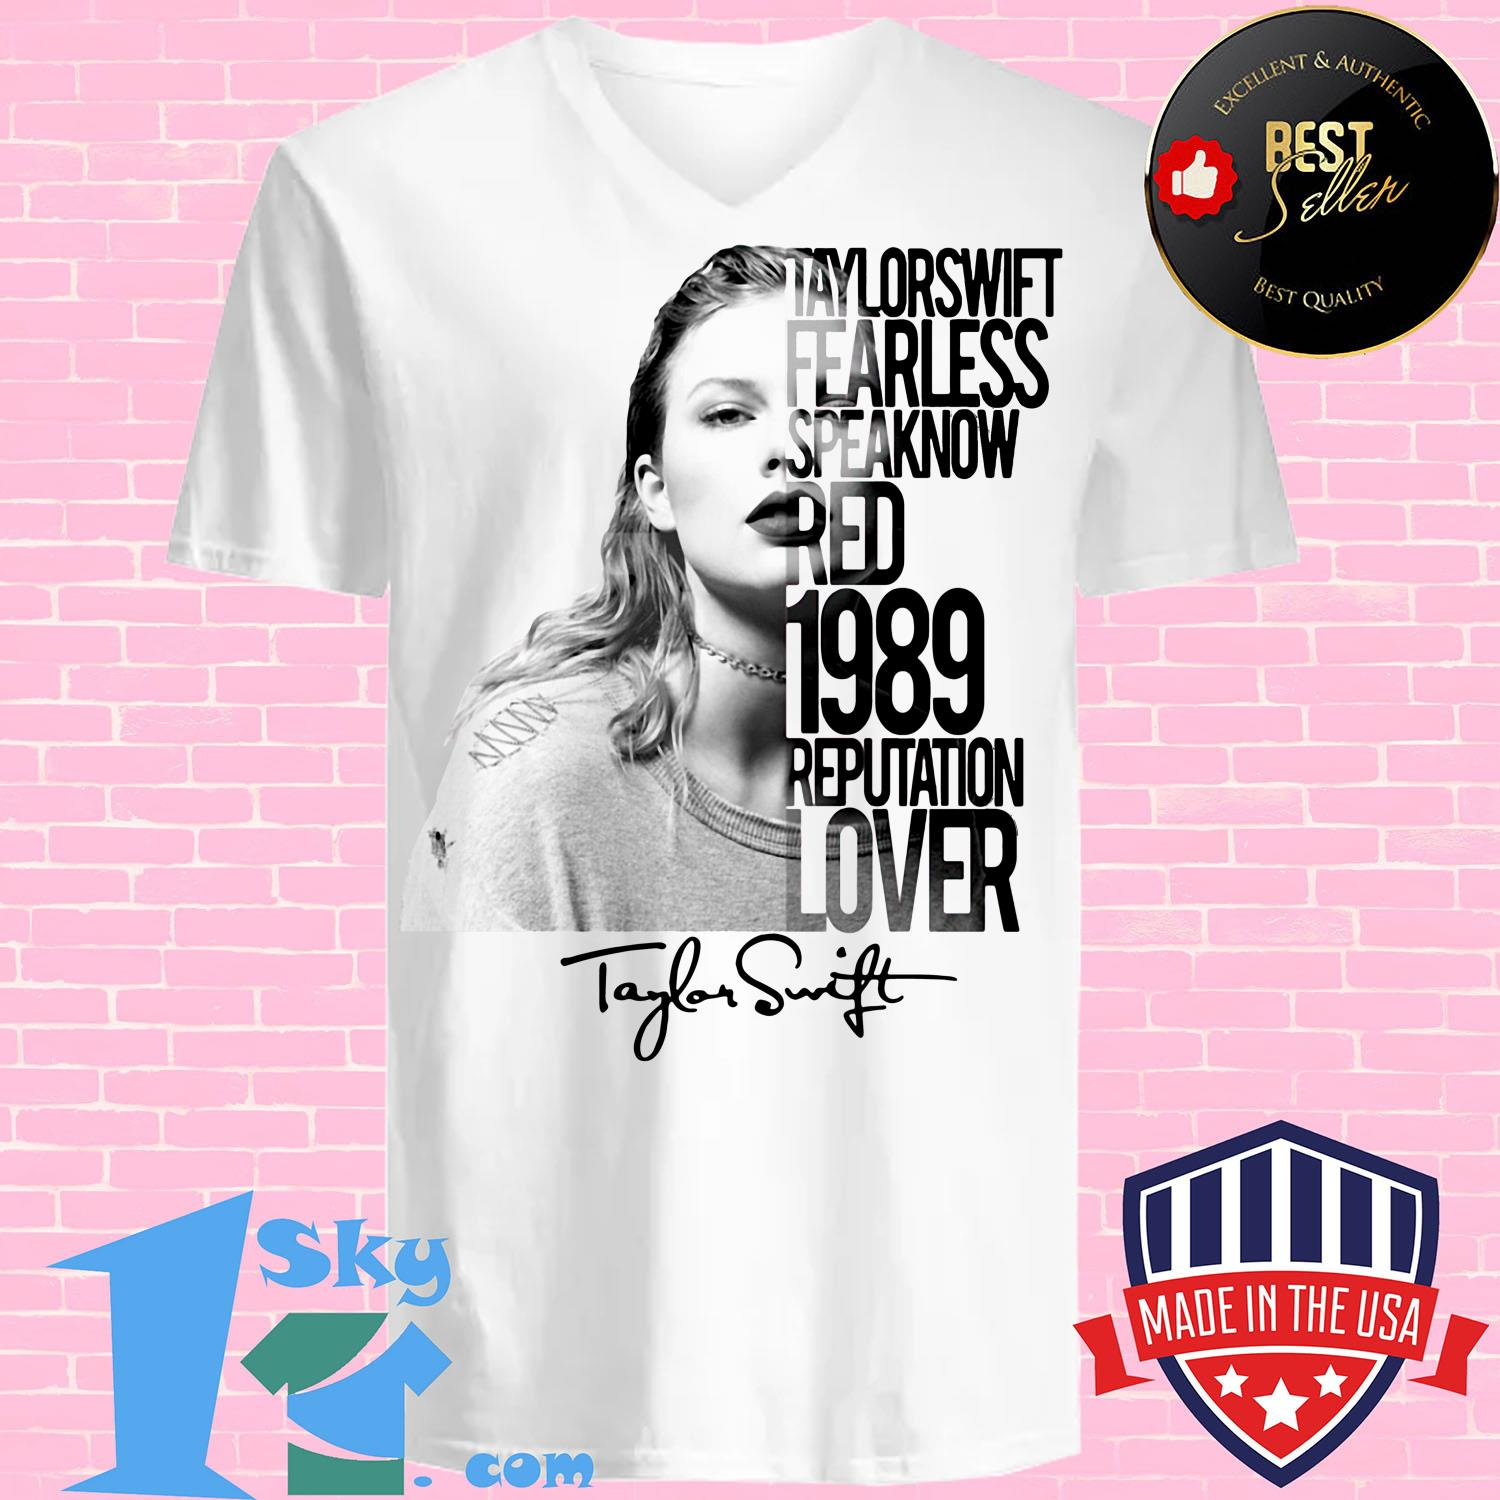 taylor swift fearless speak now red 1989 reputation lover poster v neck - Taylor Swift fearless Speak Now Red 1989 Reputation Lover Poster Signature shirt